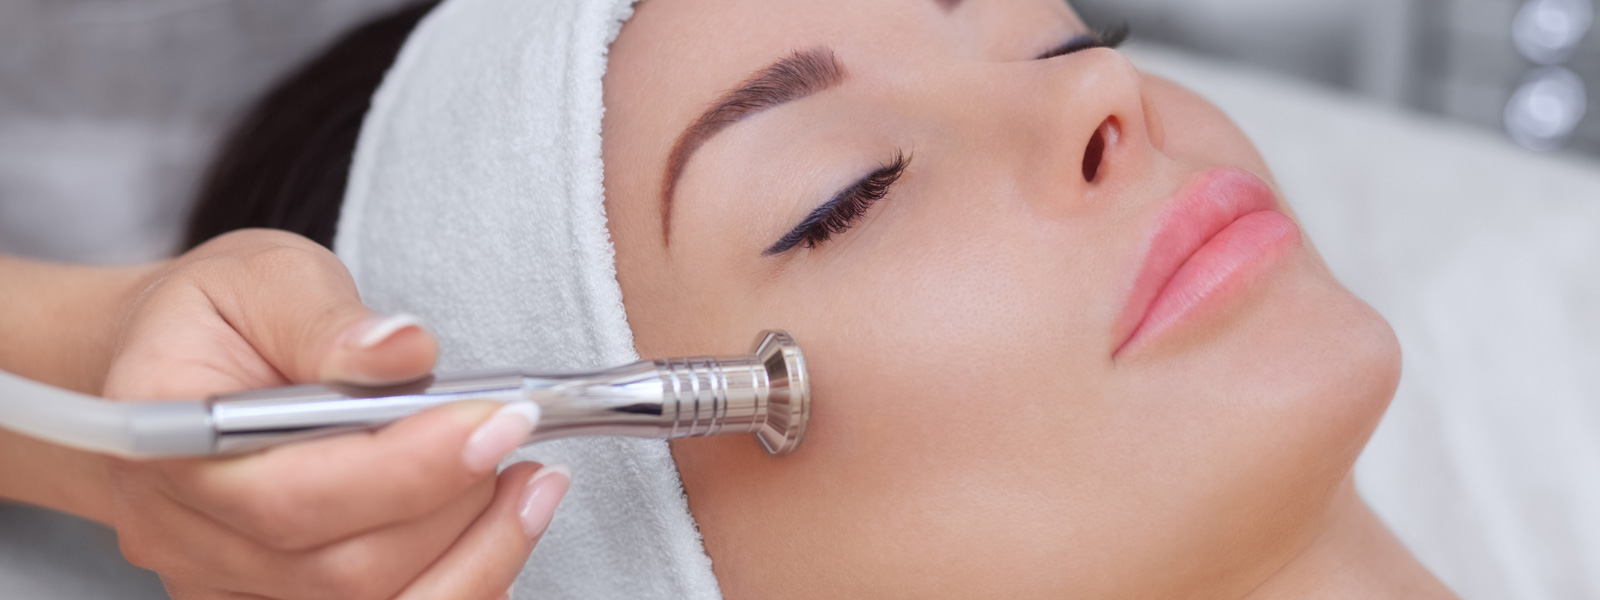 Microdermabrasion is a minimally invasive procedure used to renew overall skin tone and texture.